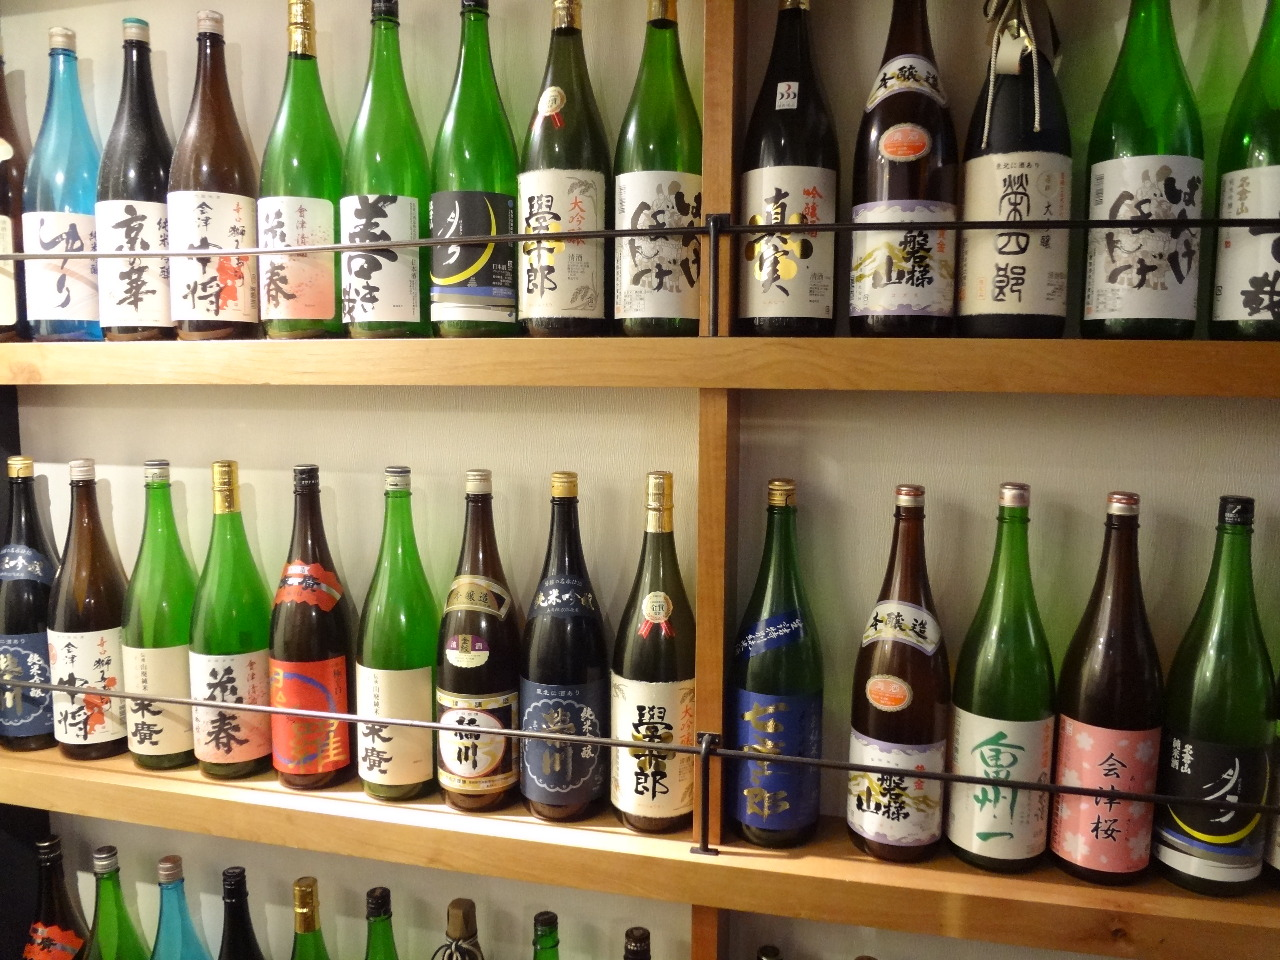 SAKE - An alcoholic beverage of Japanese origin made from fermented rice